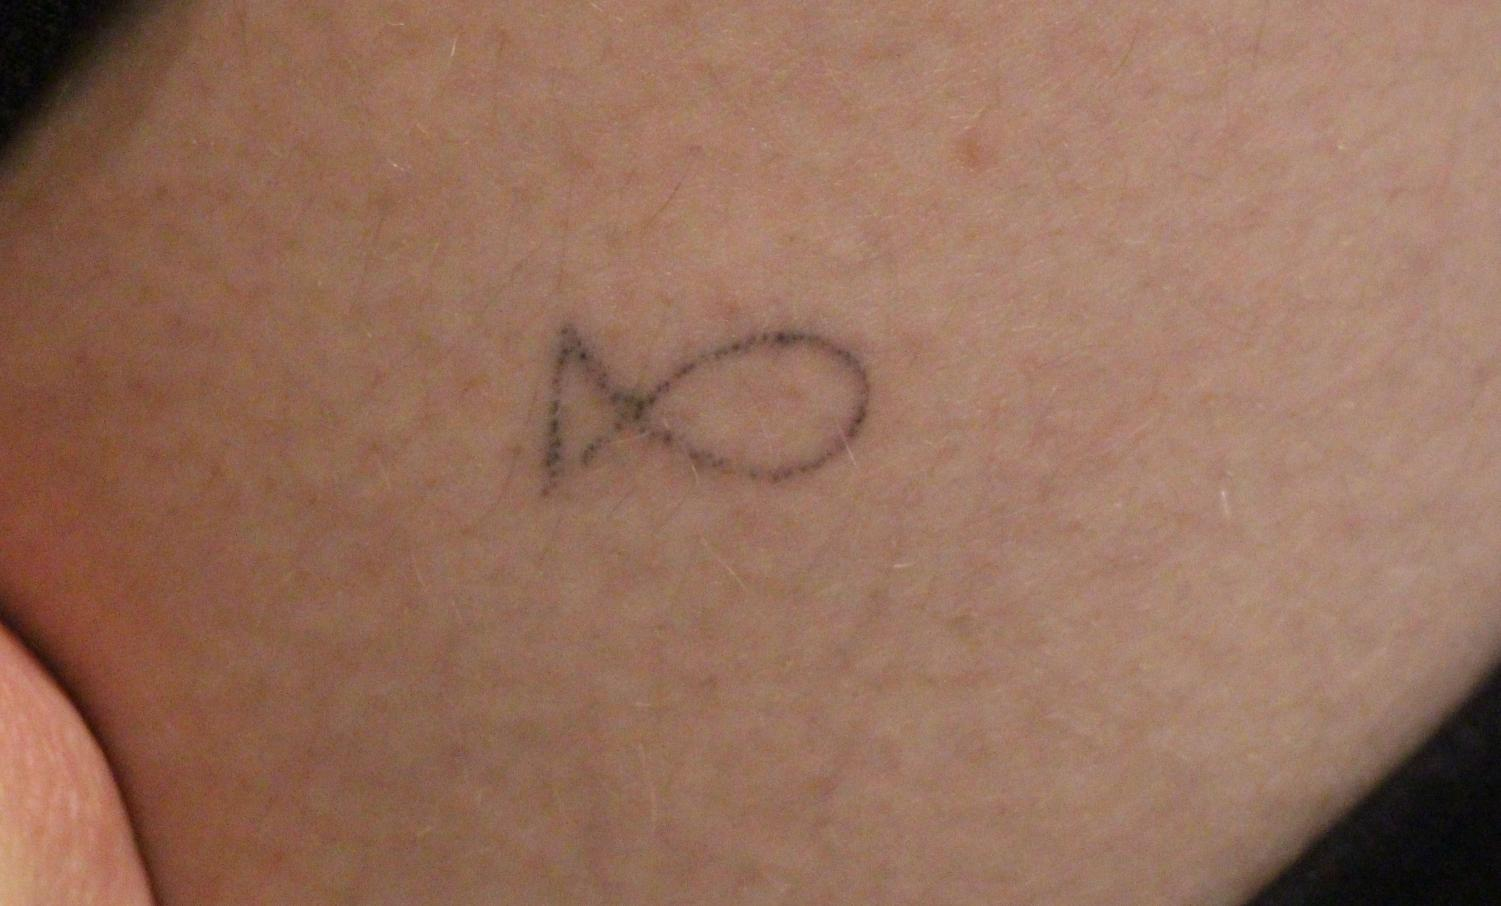 %E2%80%9CI+don%E2%80%99t+really+have+a+meaning+for+the+tattoo%2C+but+I+really+REALLY+wanted+one%2C+and+my+friend+said+she+could+give+me+a+stick+and+poke.+And+I%E2%80%99ve+wanted+a+tattoo+forever%2C+but%2C+since+it+was+a+stick+and+poke+it+couldn%E2%80%99t+be+anything+too+crazy%2C+so+I+had+a+couple+ideas%2C+and+none+of+them+were+that+cool+to+me.+So+after+hours+and+hours+of+thinking%2C+I+saw+some+dudes+bumper+sticker%2C+and+it+was+just+a+simple+little+fish%2C+nothing+too+crazy%2C+and+I+thought+the+design+was+really+cool.+But+honestly%2C+I+didn%E2%80%99t+really+care+what+the+tattoo+was%2C+I+just+wanted+to+have+one%2C+and+be+able+to+say+that+my+FIRST+tattoo+was+given+by+one+of+my+best+friends%2C+in+an+unforgettable+experience.%E2%80%9D